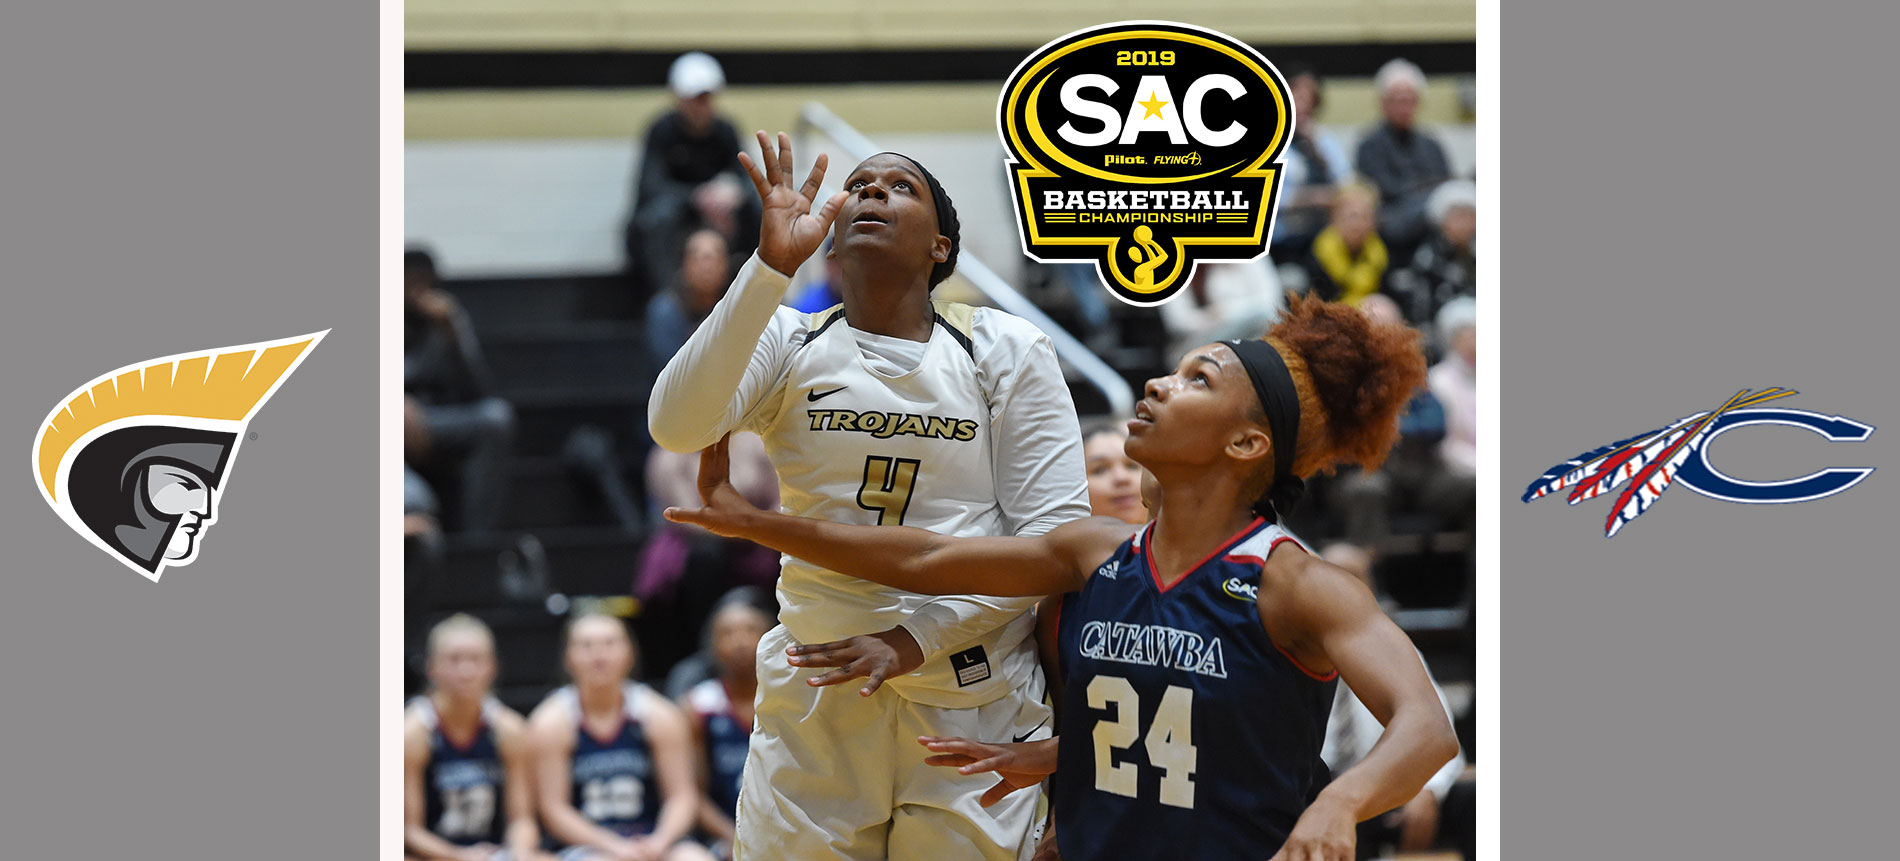 No. 15 Trojans Set to Host Catawba for SAC Quarterfinal Round